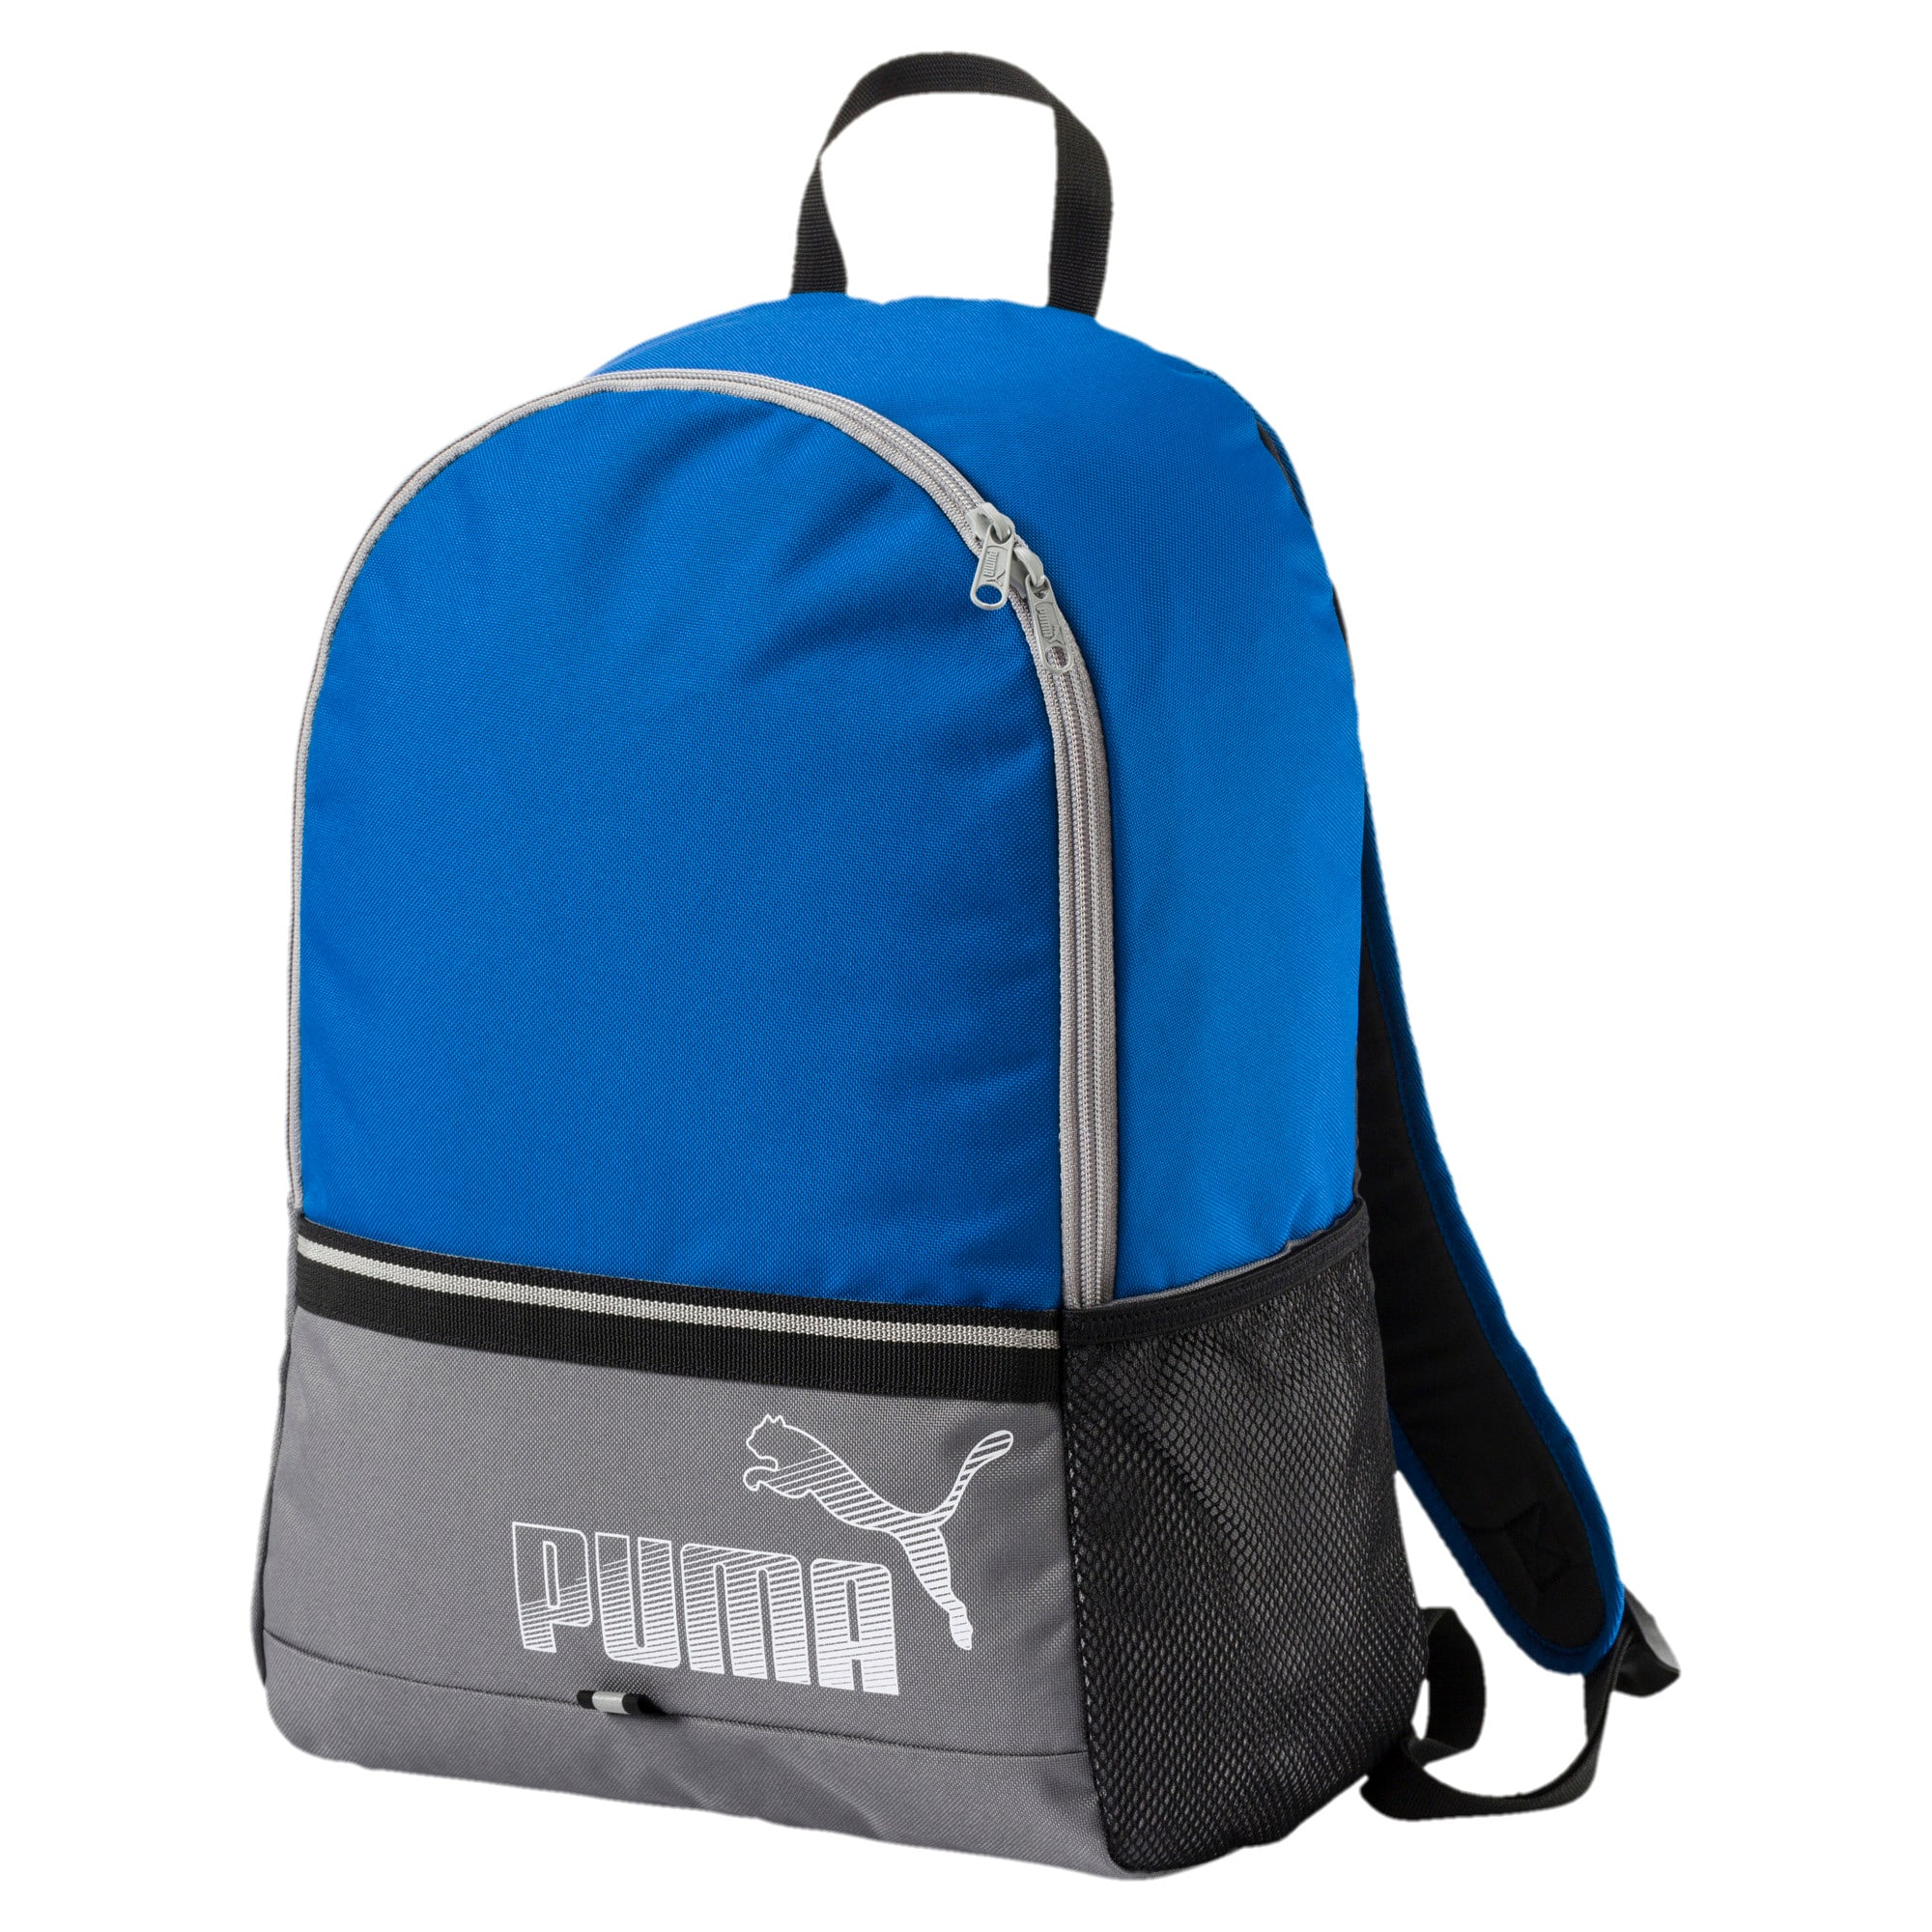 Thumbnail 1 of Phase Backpack II, Lapis Blue-QUIET SHADE, medium-IND